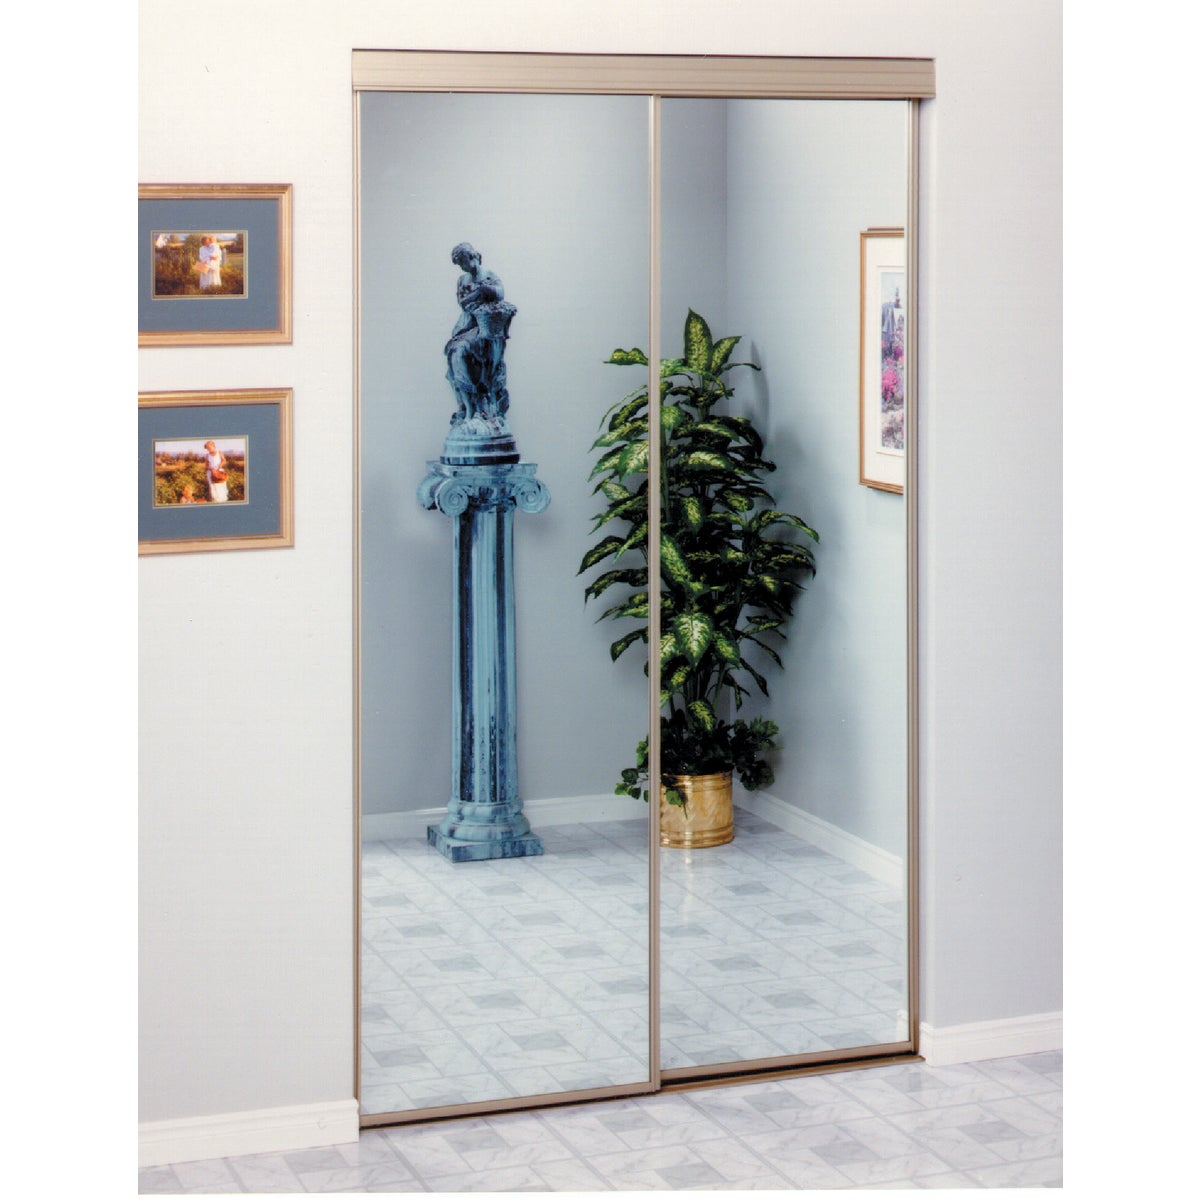 2002 47X80 GOLD BIPSS DR - 24-8001 by Home Decor Innov